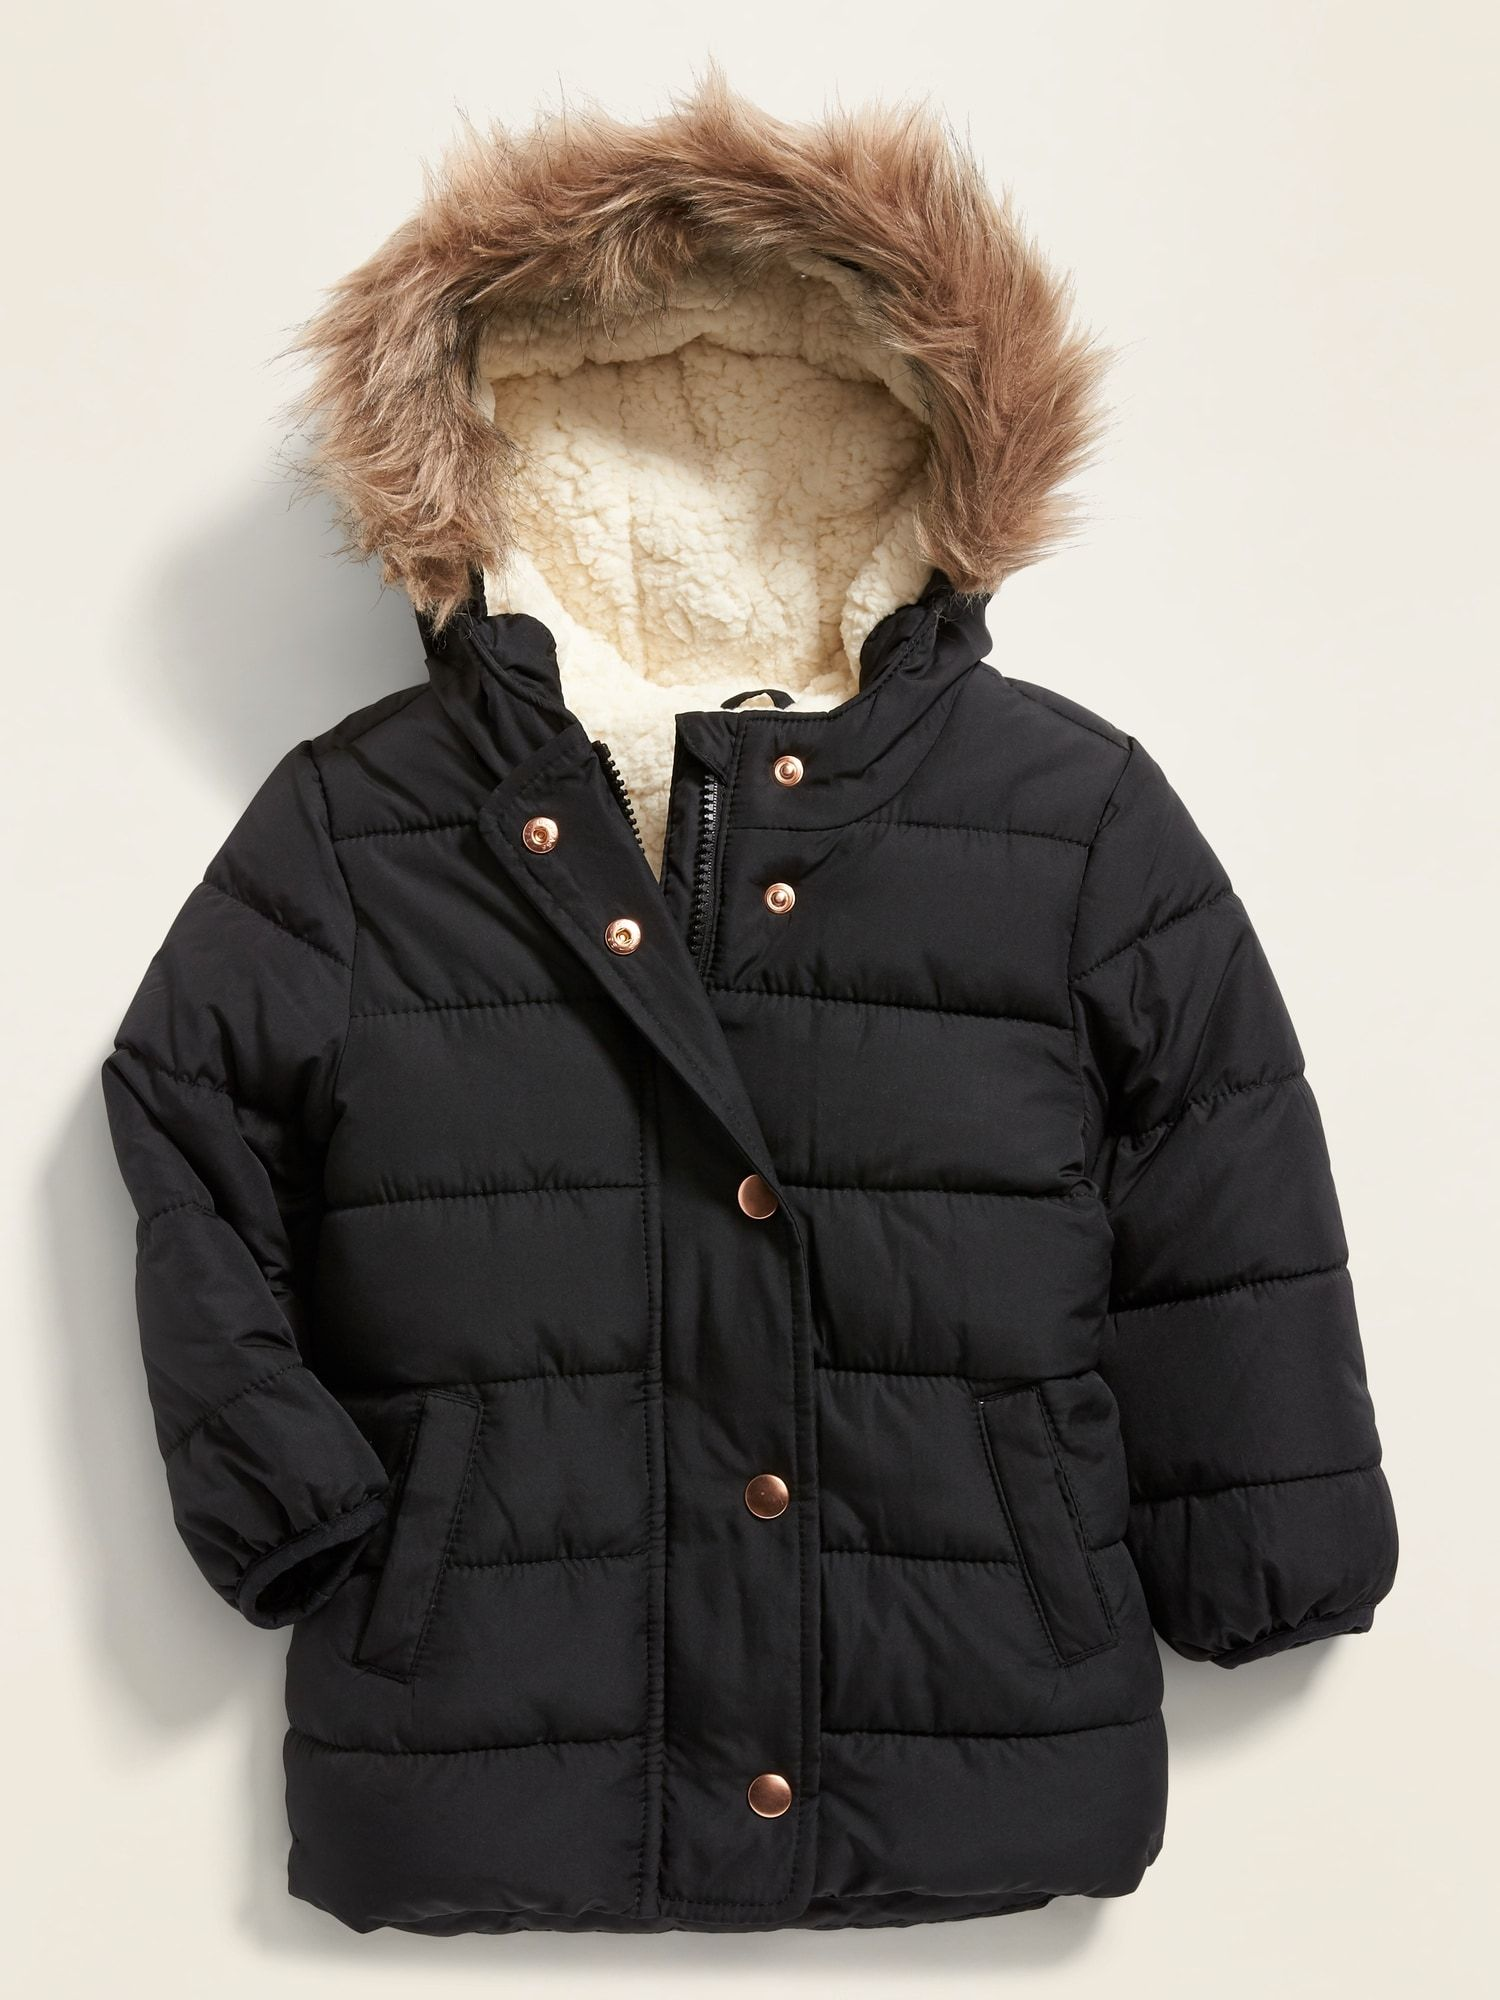 Frost Free Long Puffer Jacket For Toddler Girls Old Navy Long Puffer Jacket Old Navy Puffer Jackets [ 2000 x 1500 Pixel ]